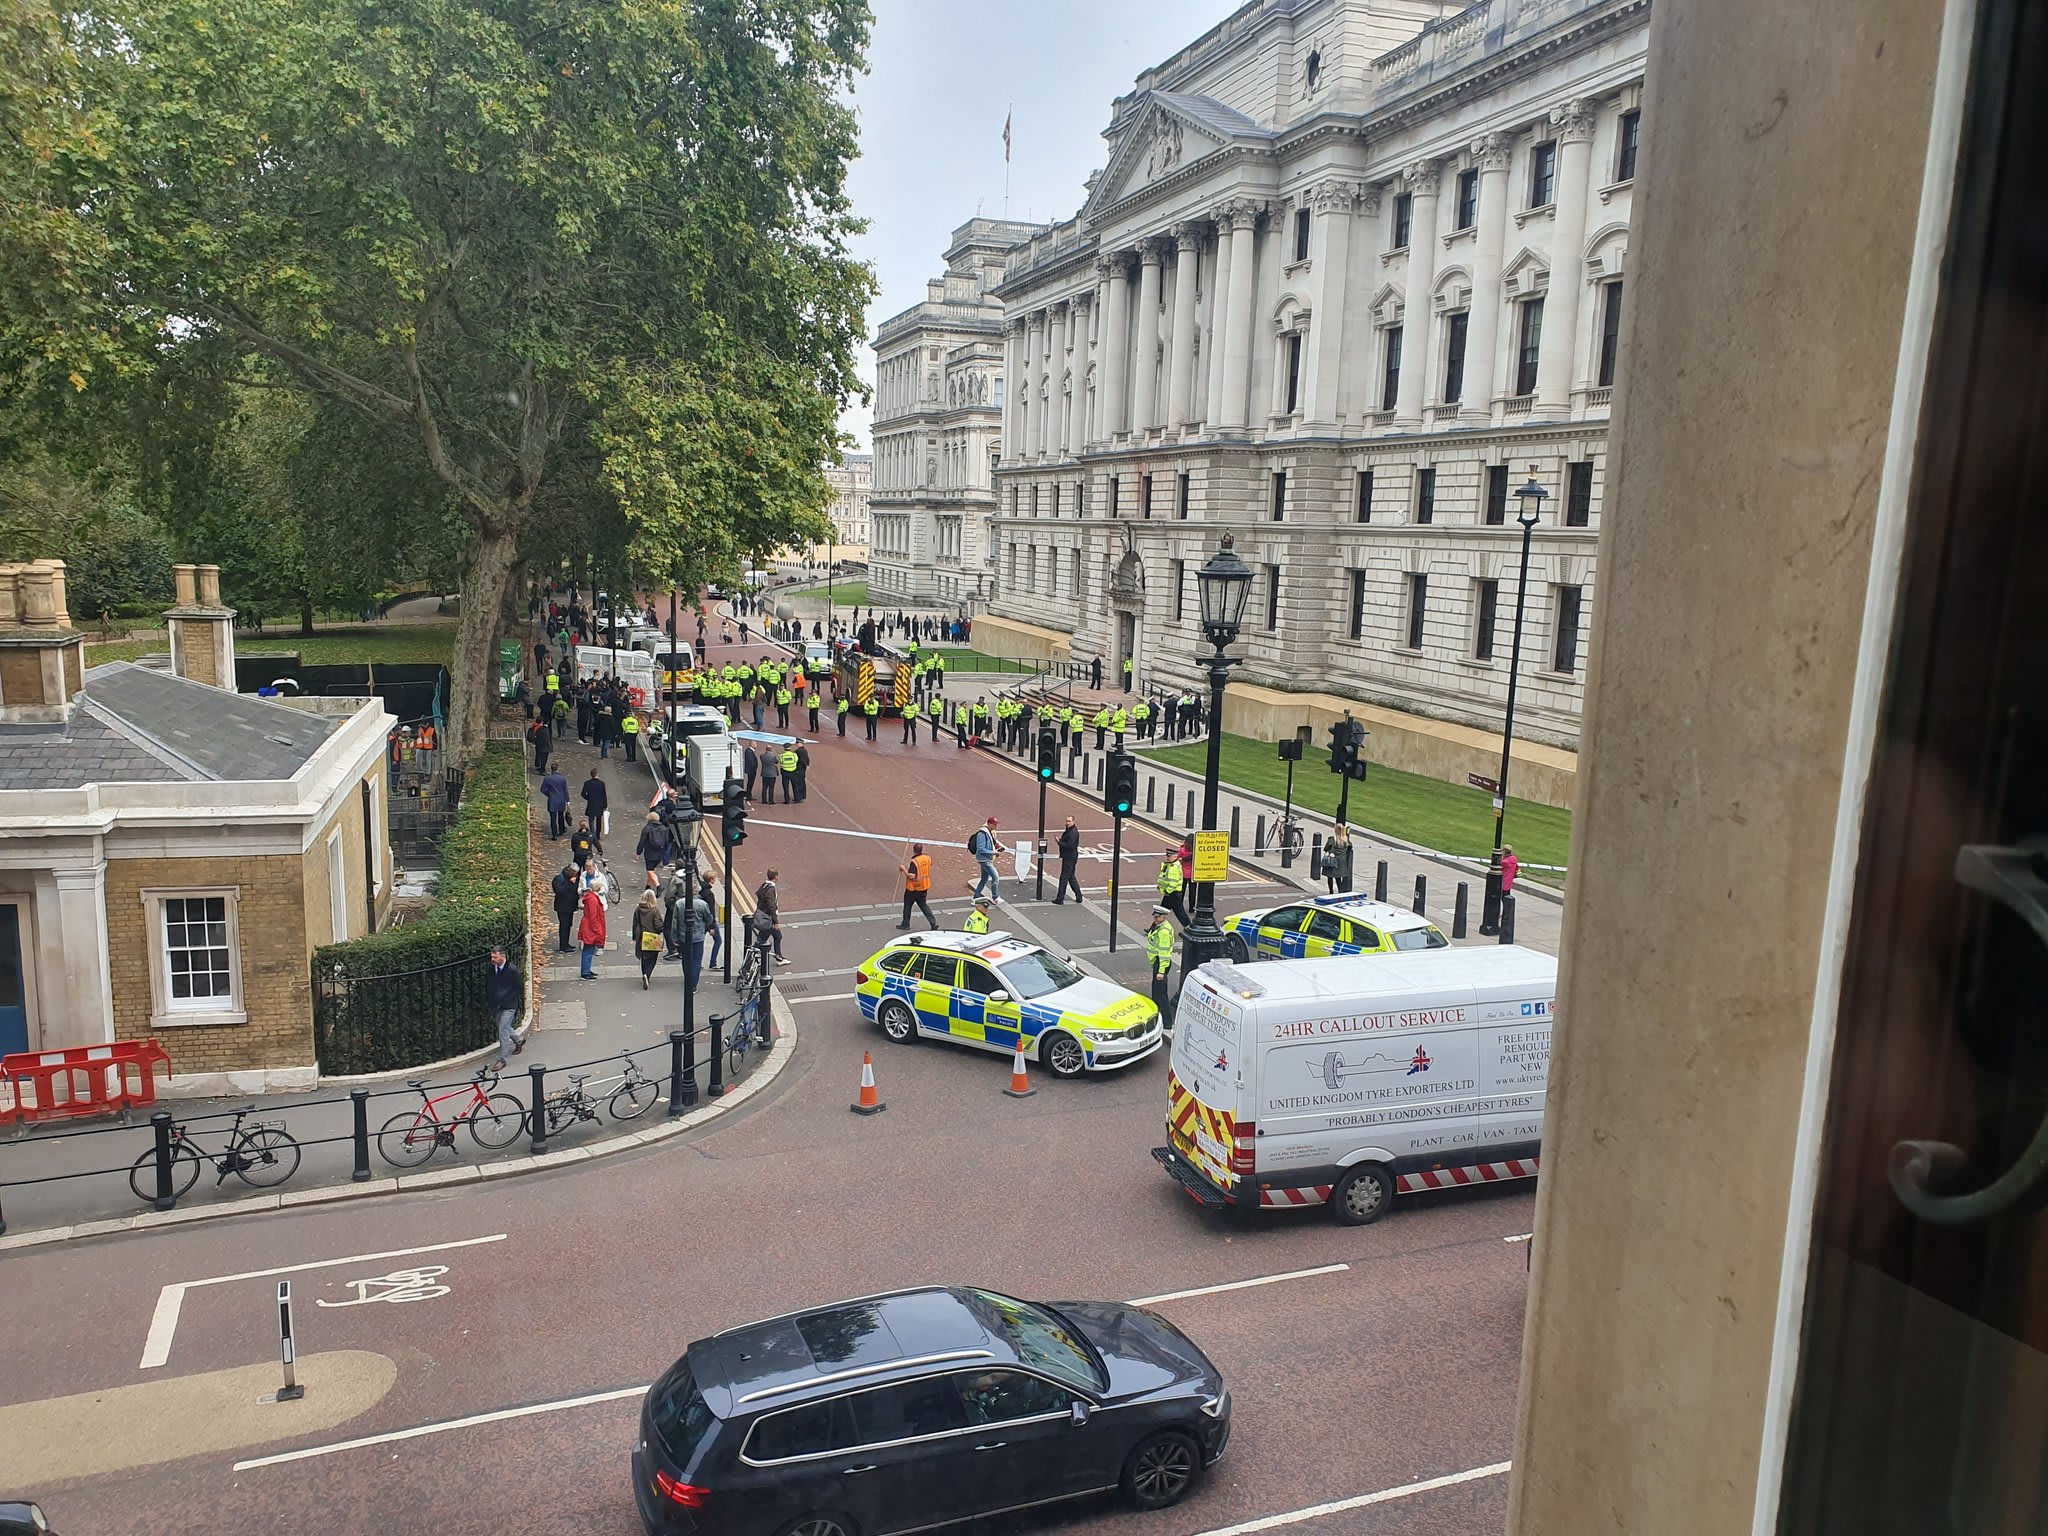 photo of a view of the UK Treasury building from the window of Delib's Westminster 2019 PDP event